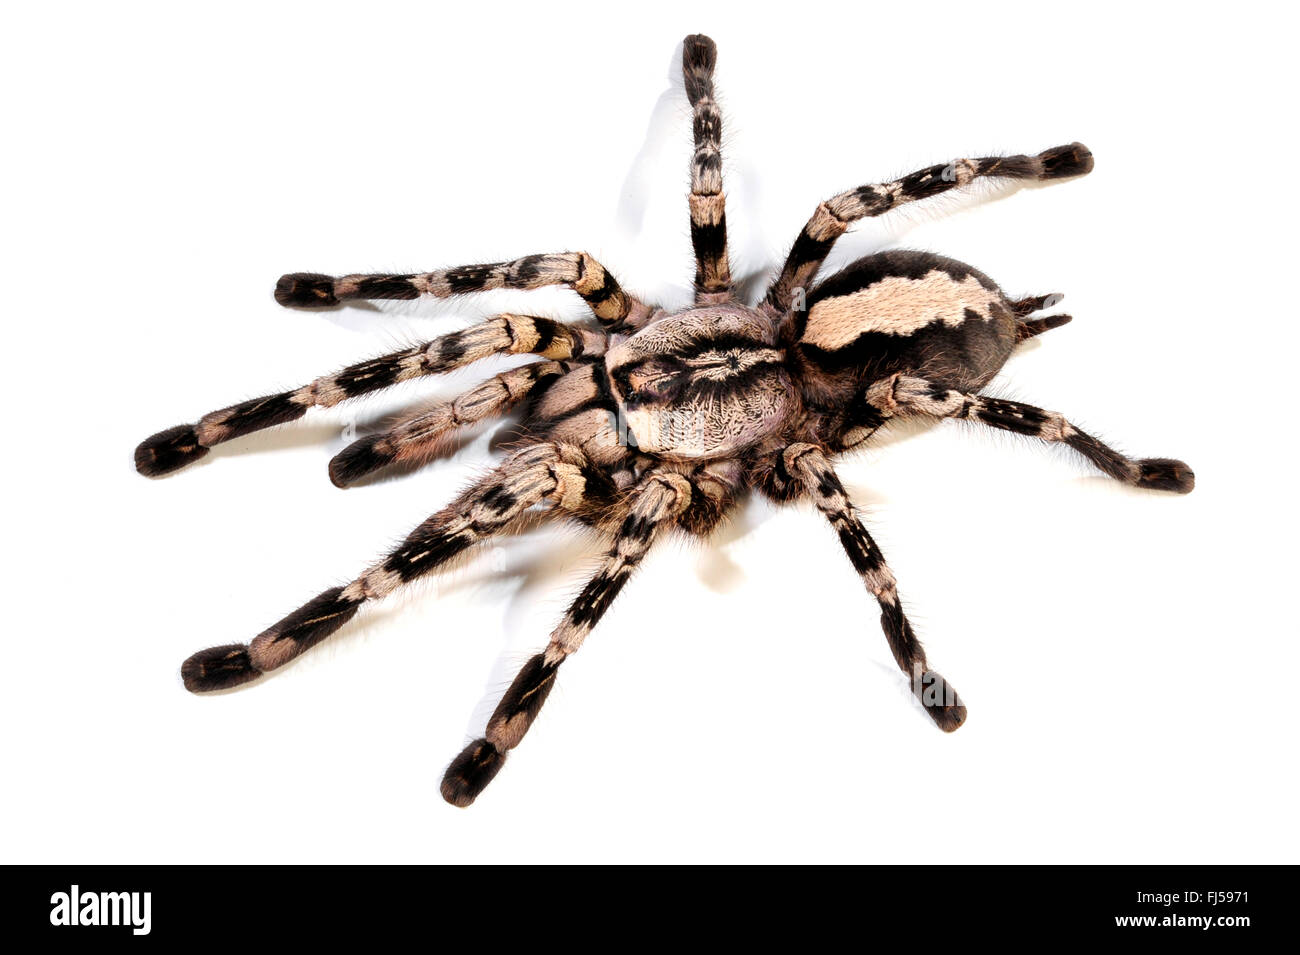 Pedersen's Ornamental (Poecilotheria pederseni), cut-out, Sri Lanka - Stock Image